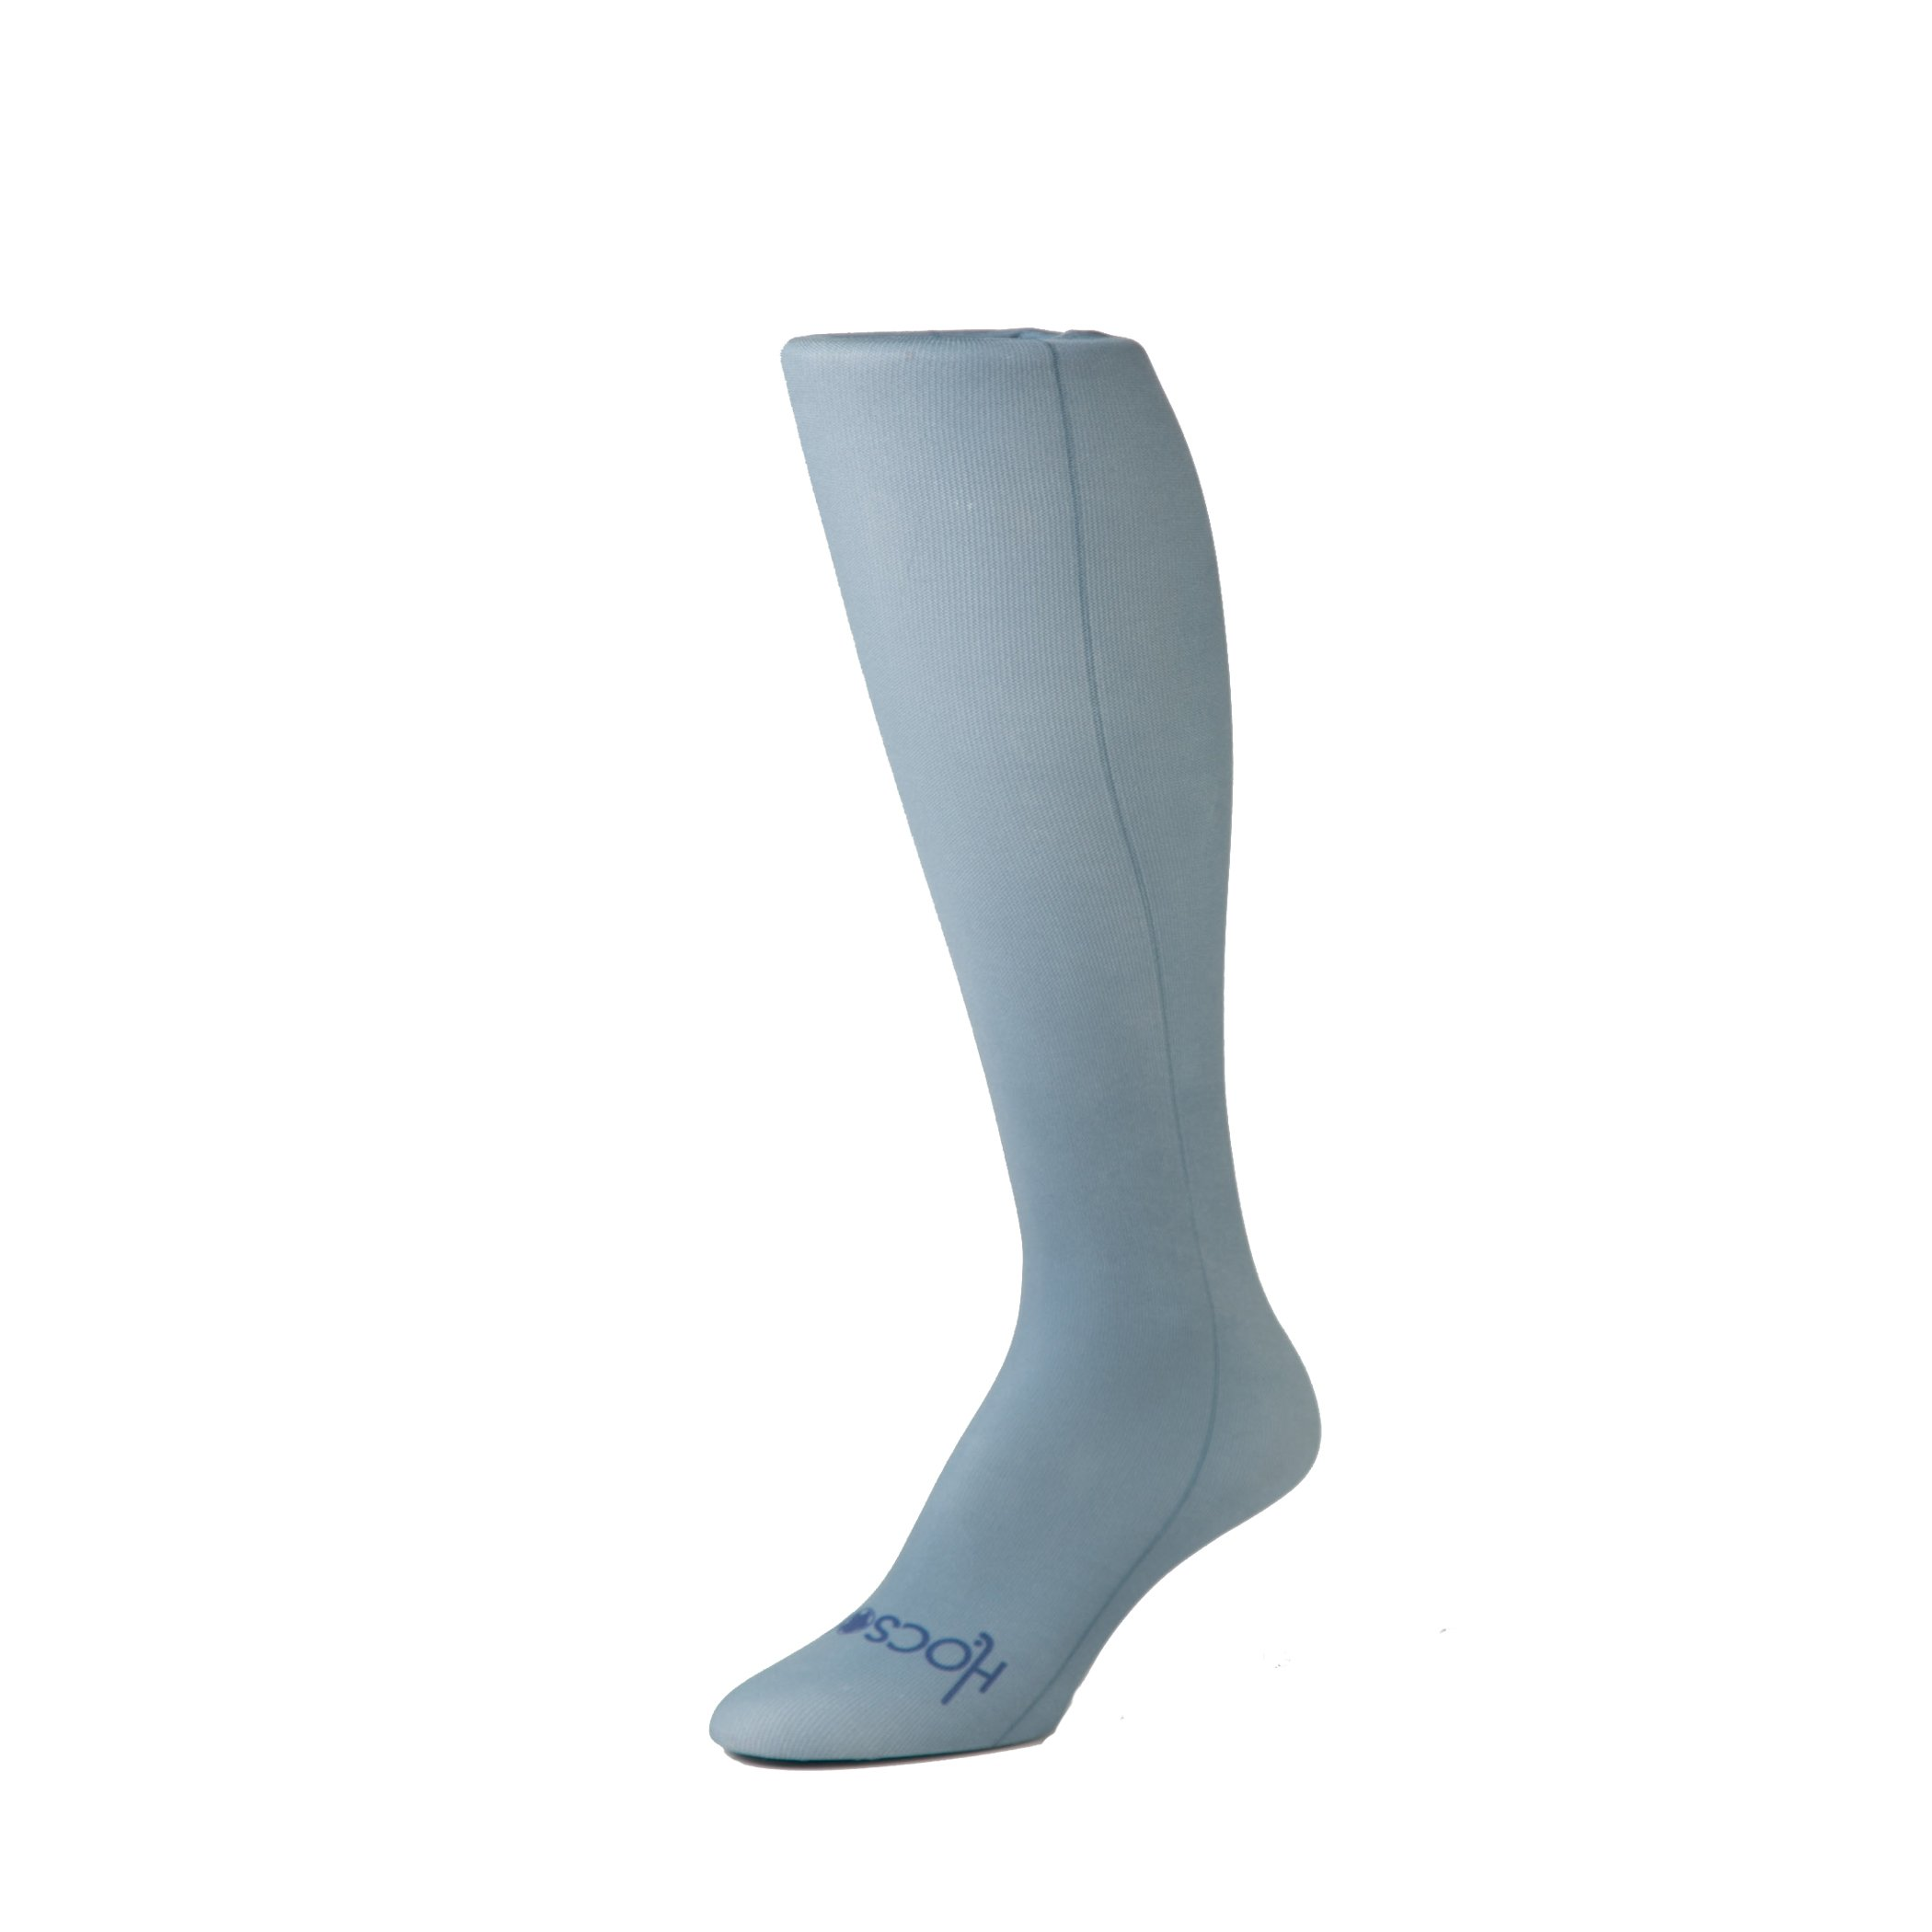 HOCSOCX WOMEN'S/GIRL'S SOLID COLOR SHIN GUARD LINER SOCKS (Women's, Steel Grey)